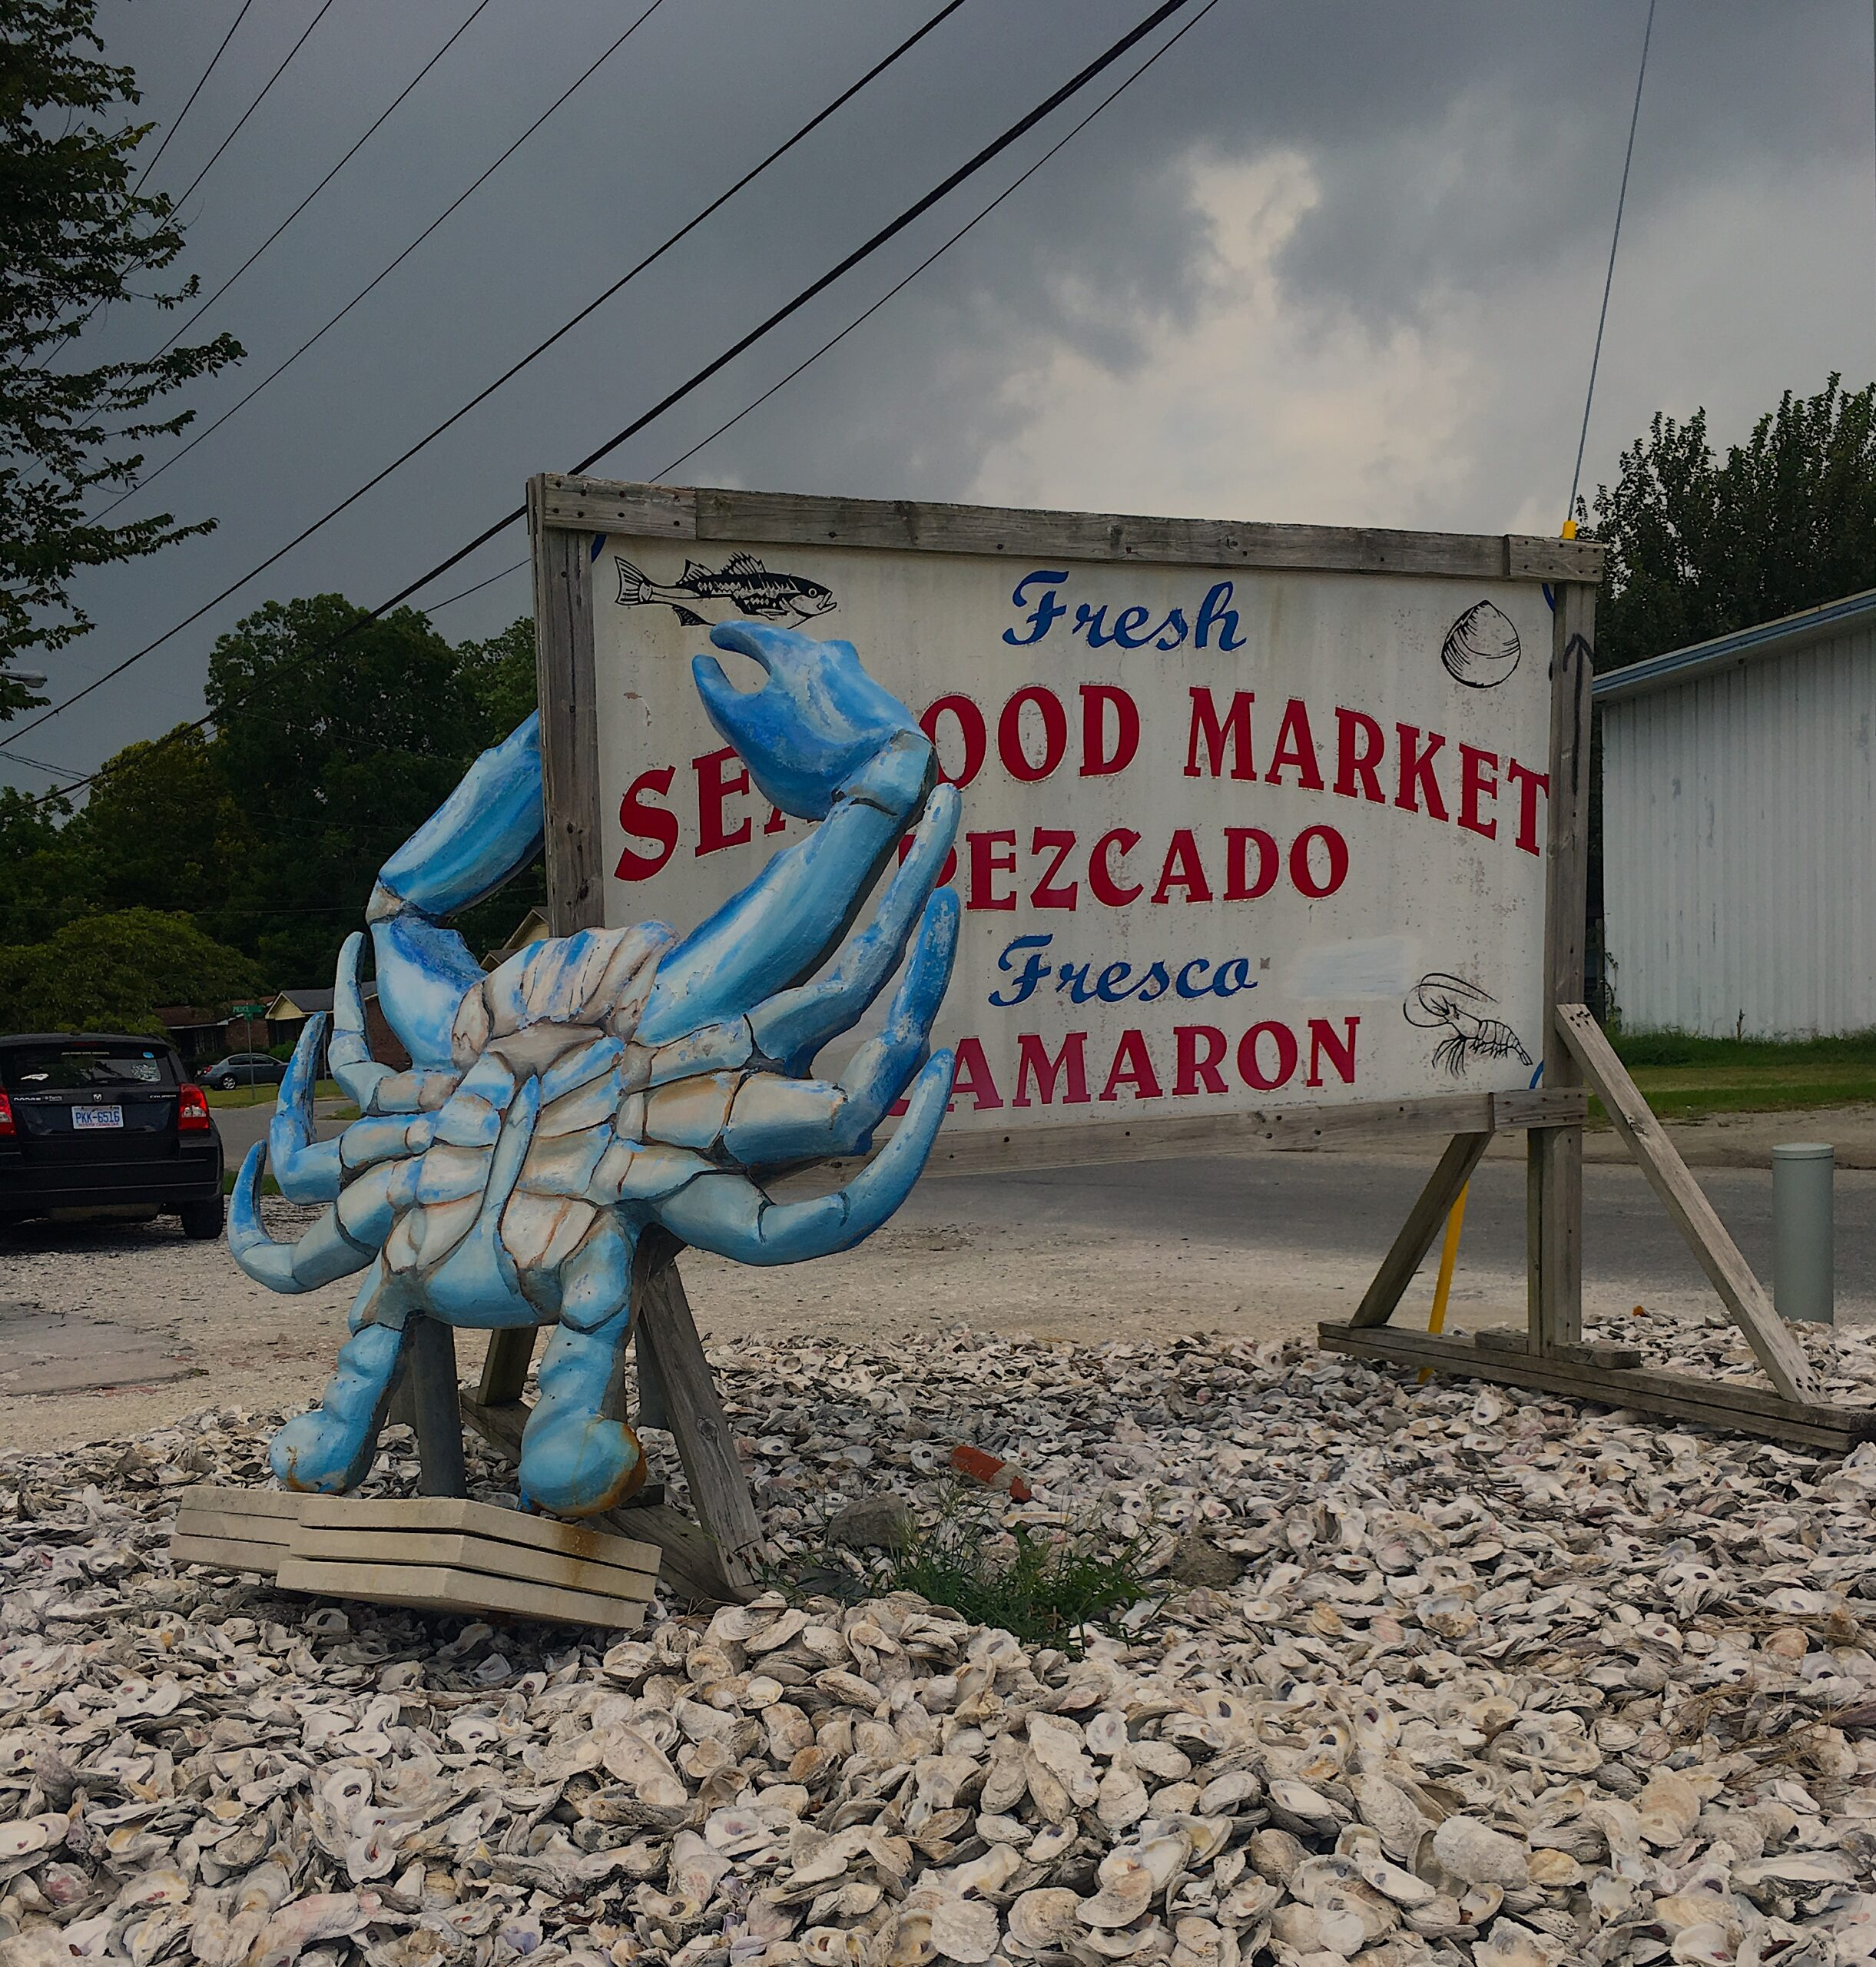 Despite heightened concern over the loss of market share to seafood from other countries, wholesalers differed on the general health of their businesses. Photos by Barbara Garrity-Blake.